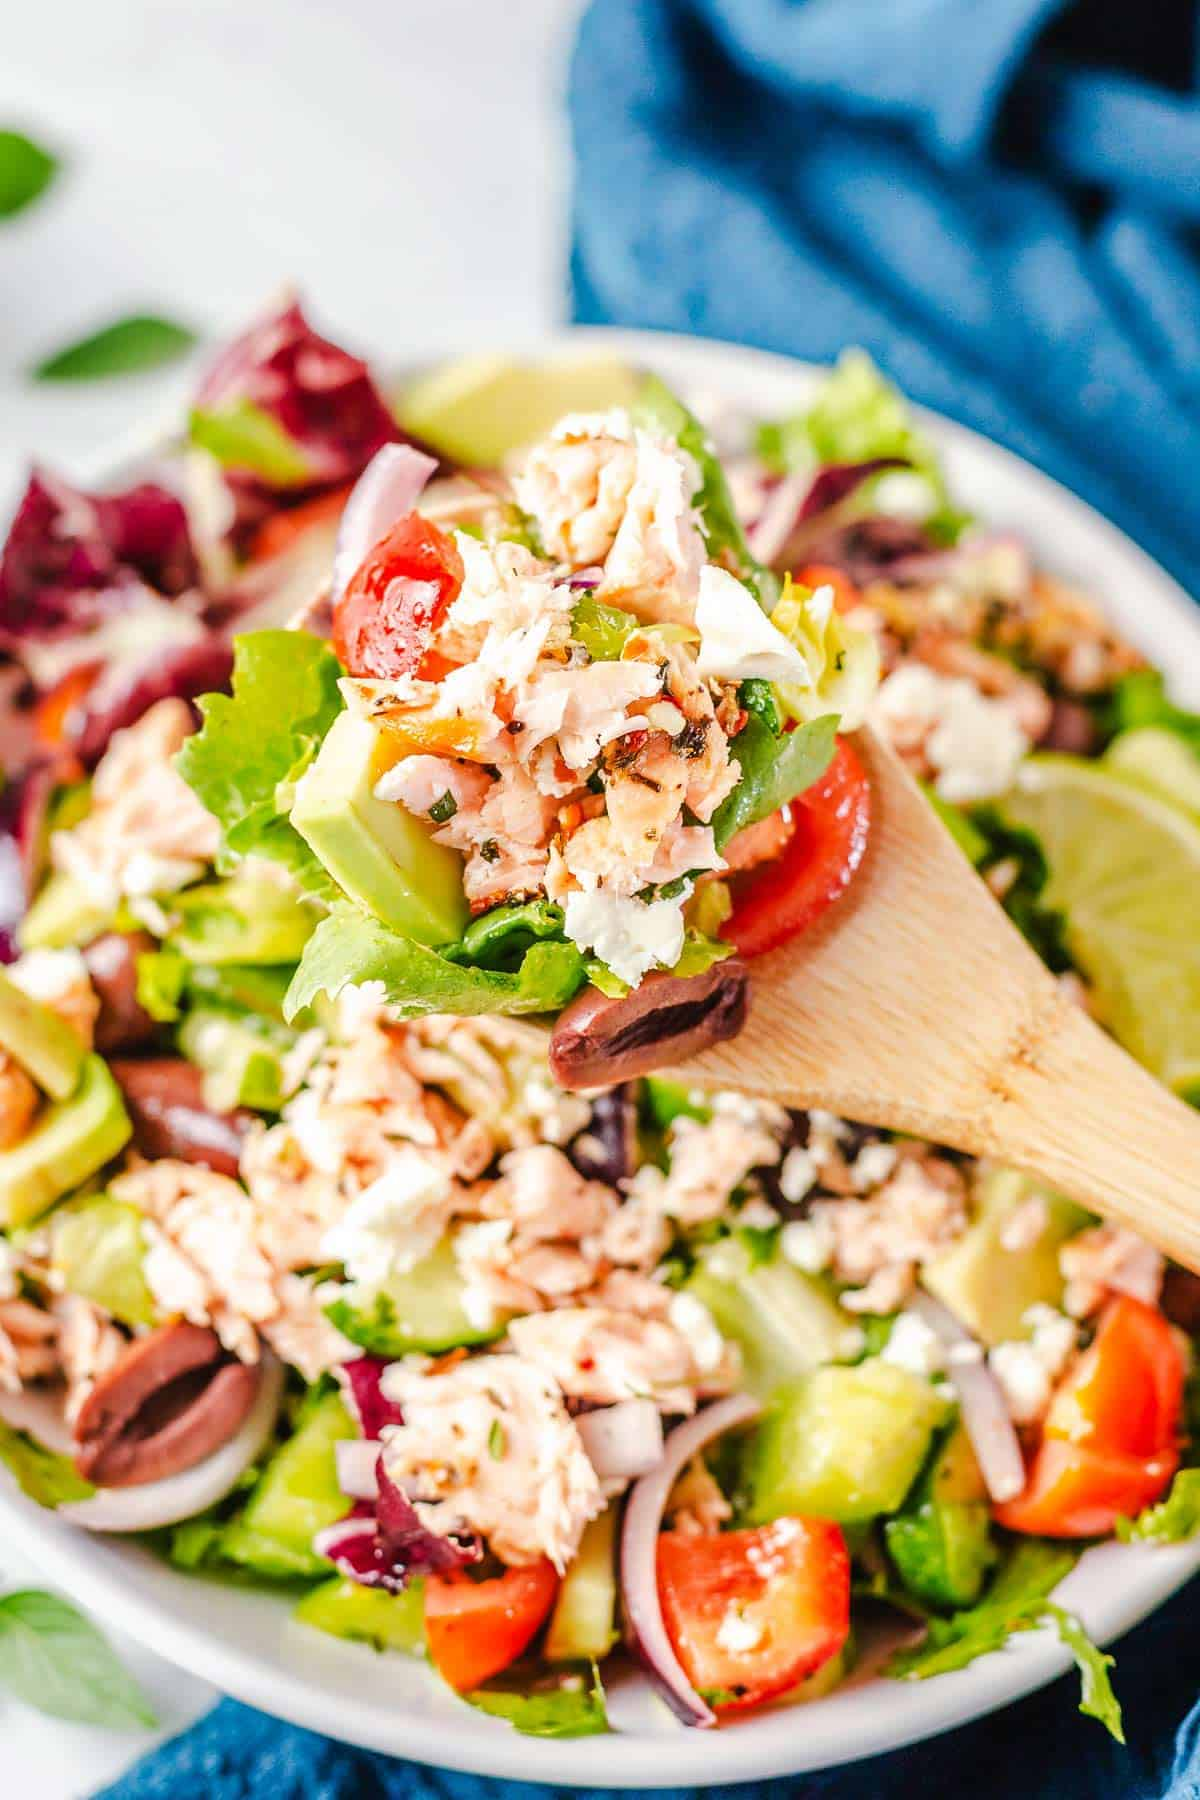 shredded cooked salmon on a wooden spoon with lettuce and vegetables